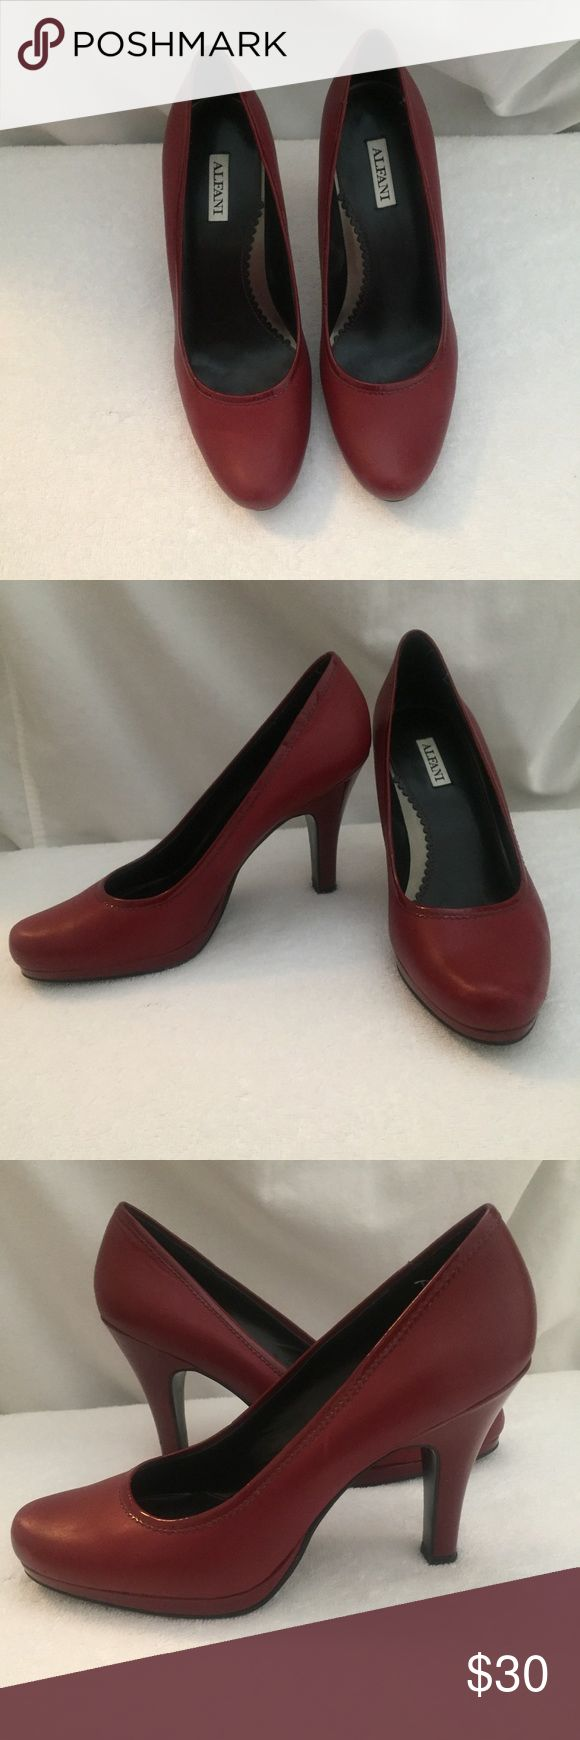 Perfect for the office, stylish and comfortable Alfani dark red ladies pumps, very nice in great condition, worn twice. Alfani Shoes Heels